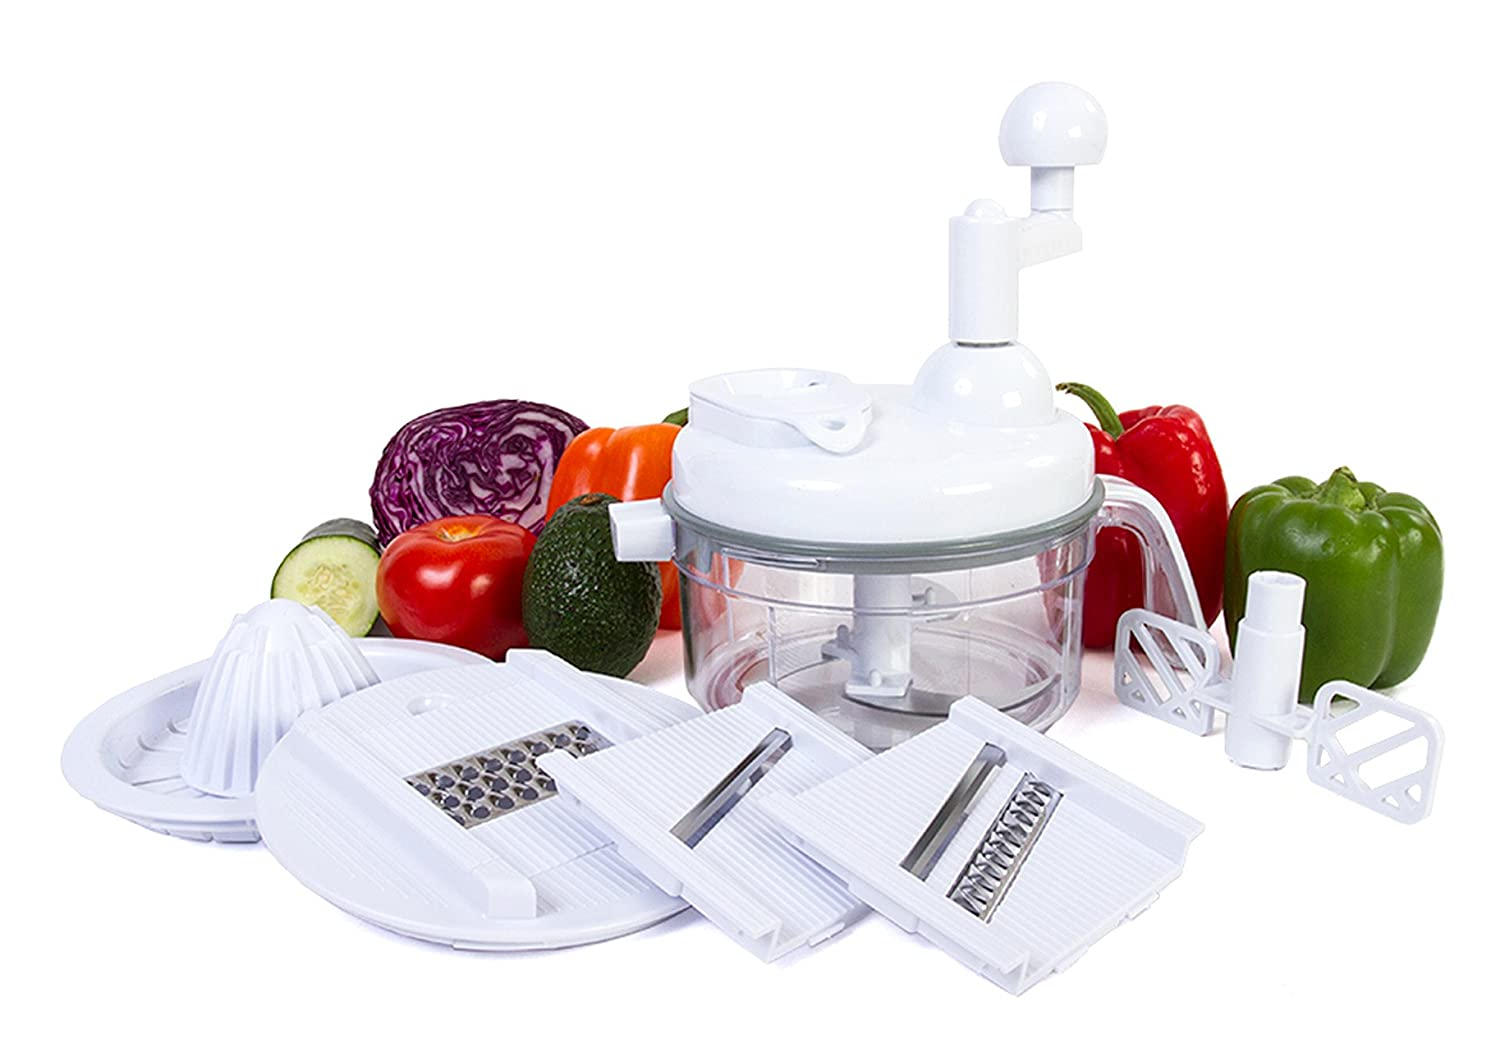 Ultra Chef Express Food Chopper – 7 in 1 Chopper, Mixer, Blender, Whipper, Slicer, Shredder and Juicer SCC-115